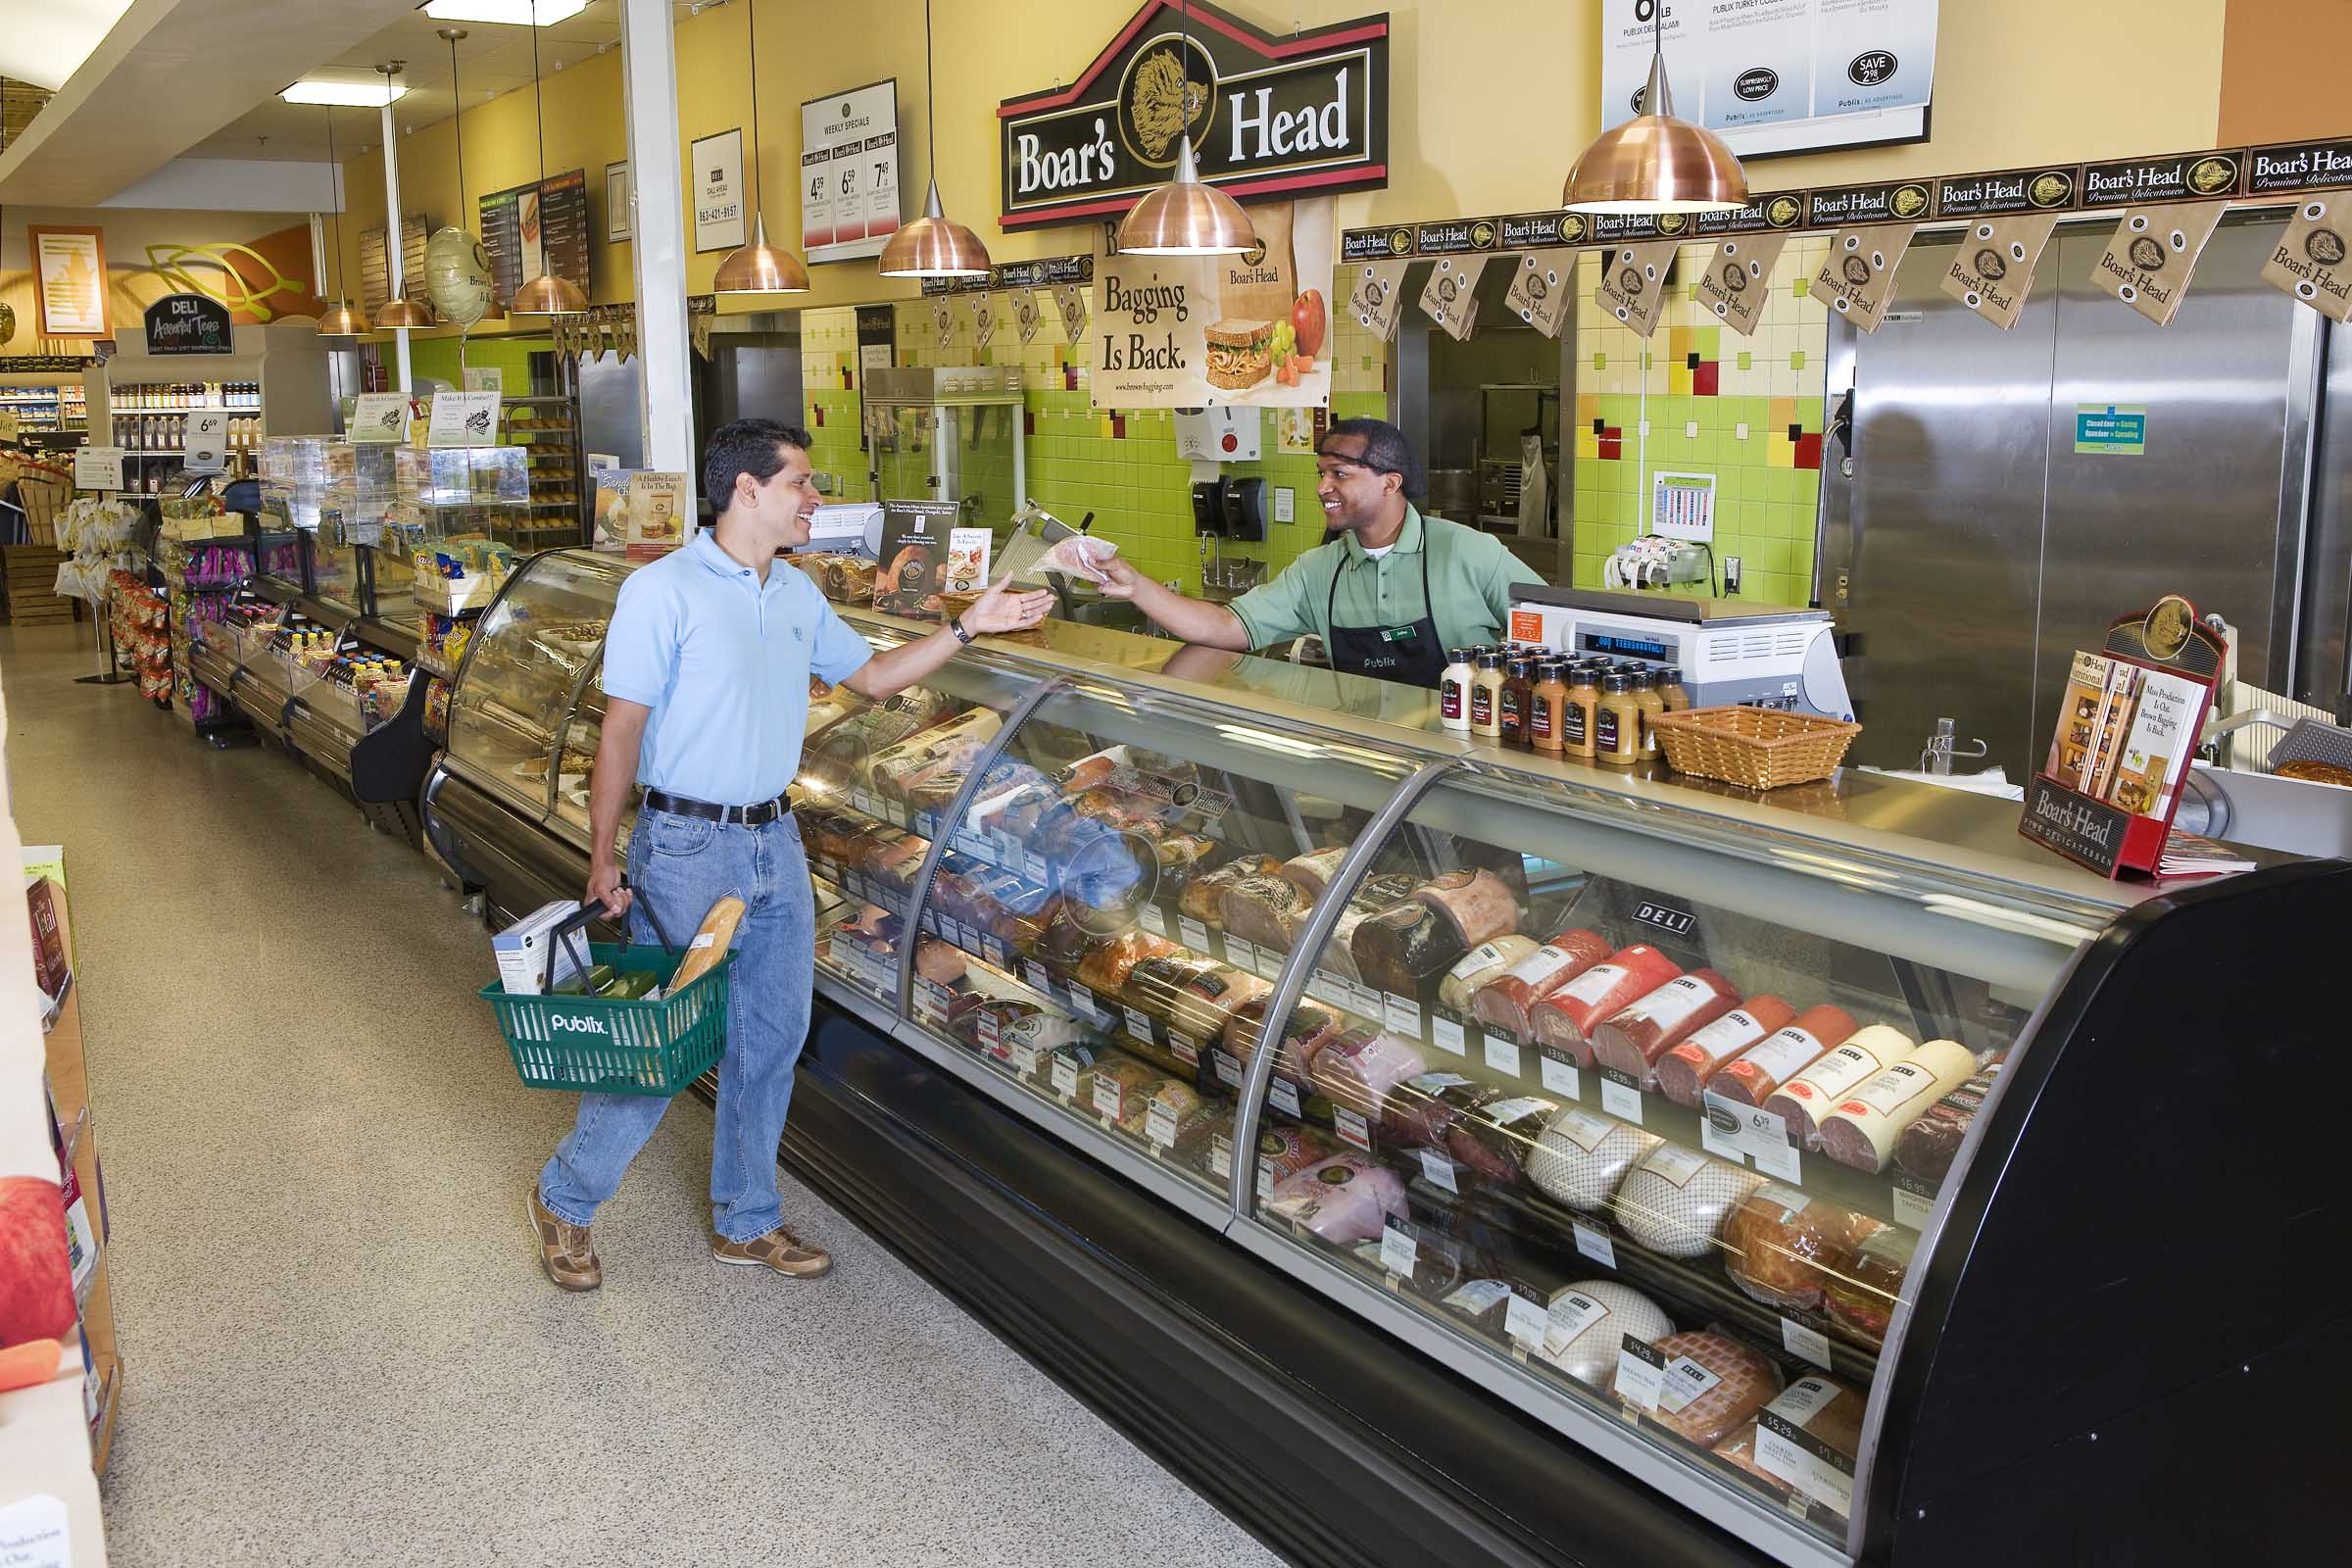 Publix Deli ordering is faster & easier with Online Easy Ordering! Order your favorite deli sub, meats, and cheeses, and they'll be ready when you are.